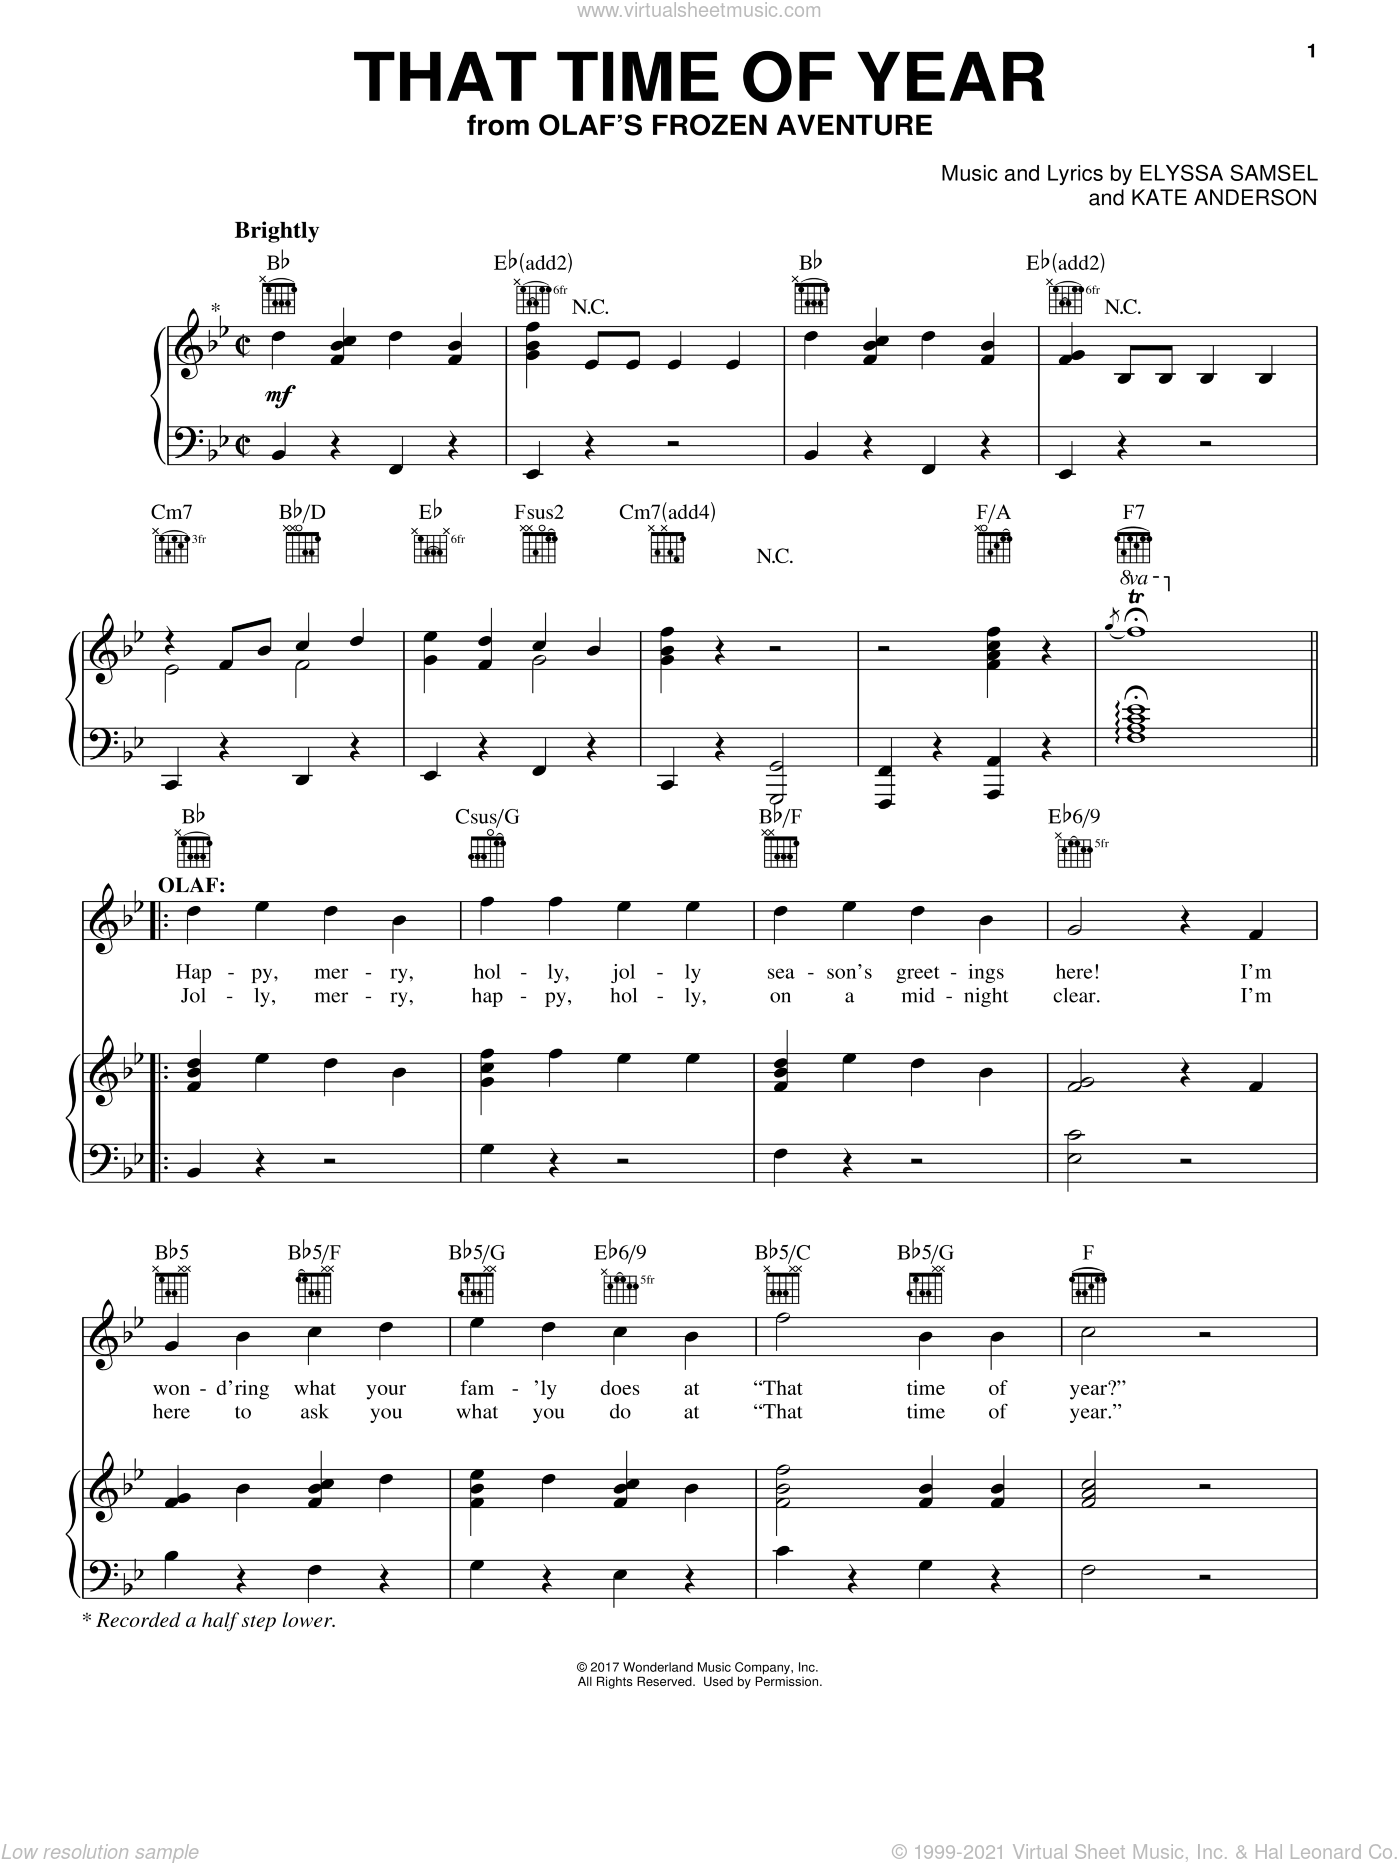 That Time Of Year sheet music for voice, piano or guitar by Elyssa Samsel and Kate Anderson, intermediate skill level